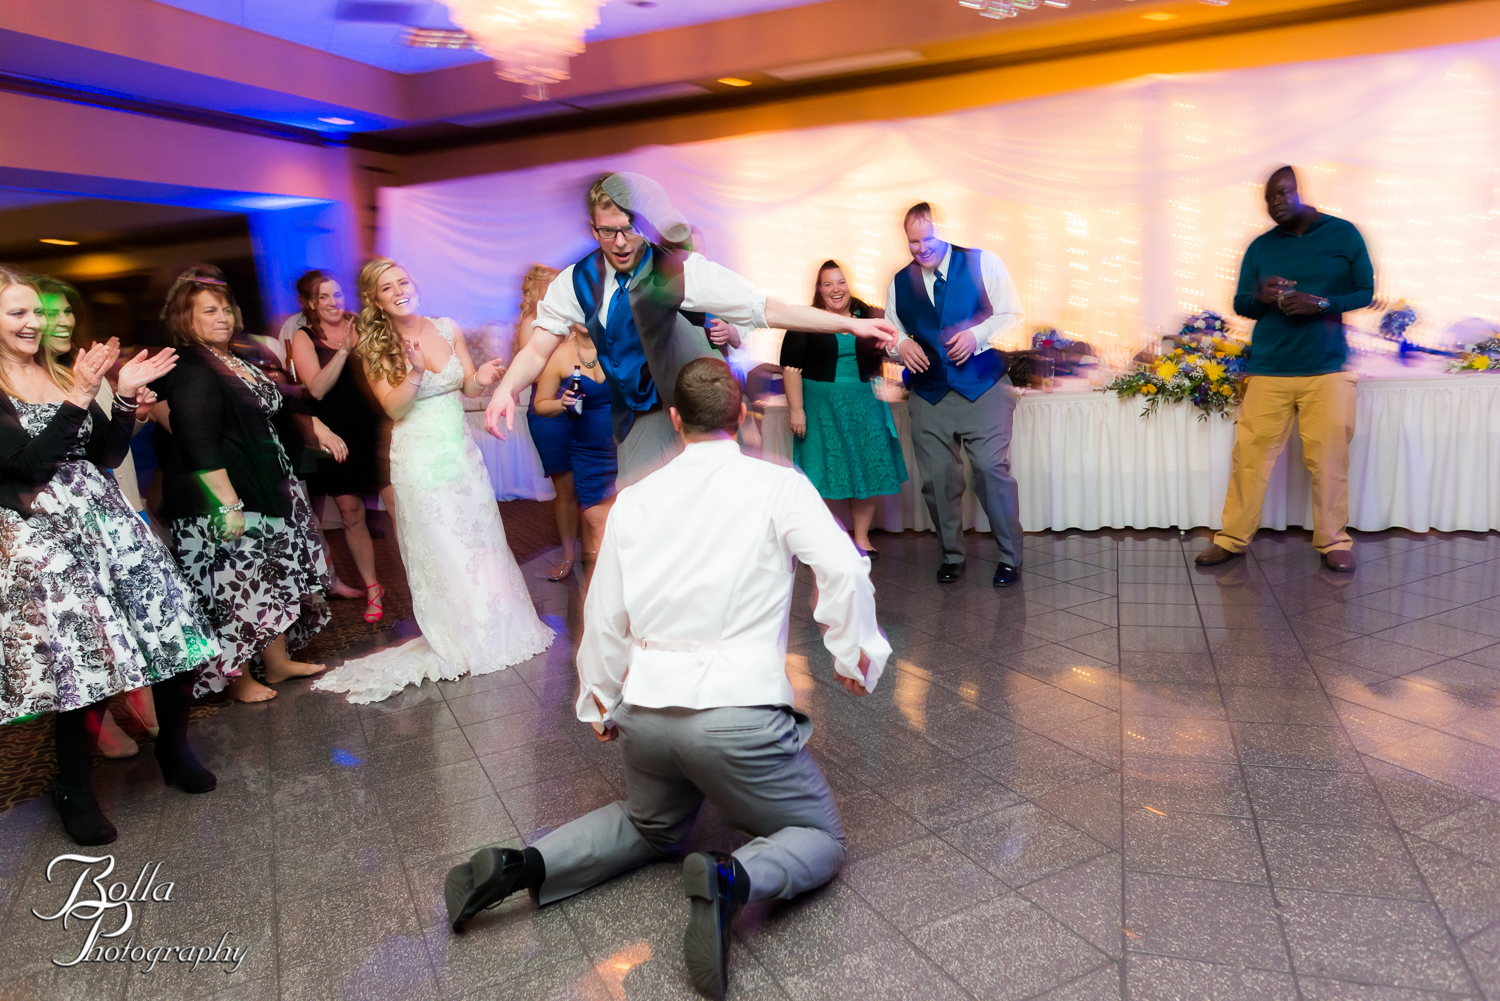 Bolla_Photography_St_Louis_wedding_photographer_Morgando_Blues_hockey_Botanical_Gardens_spring-0519.jpg